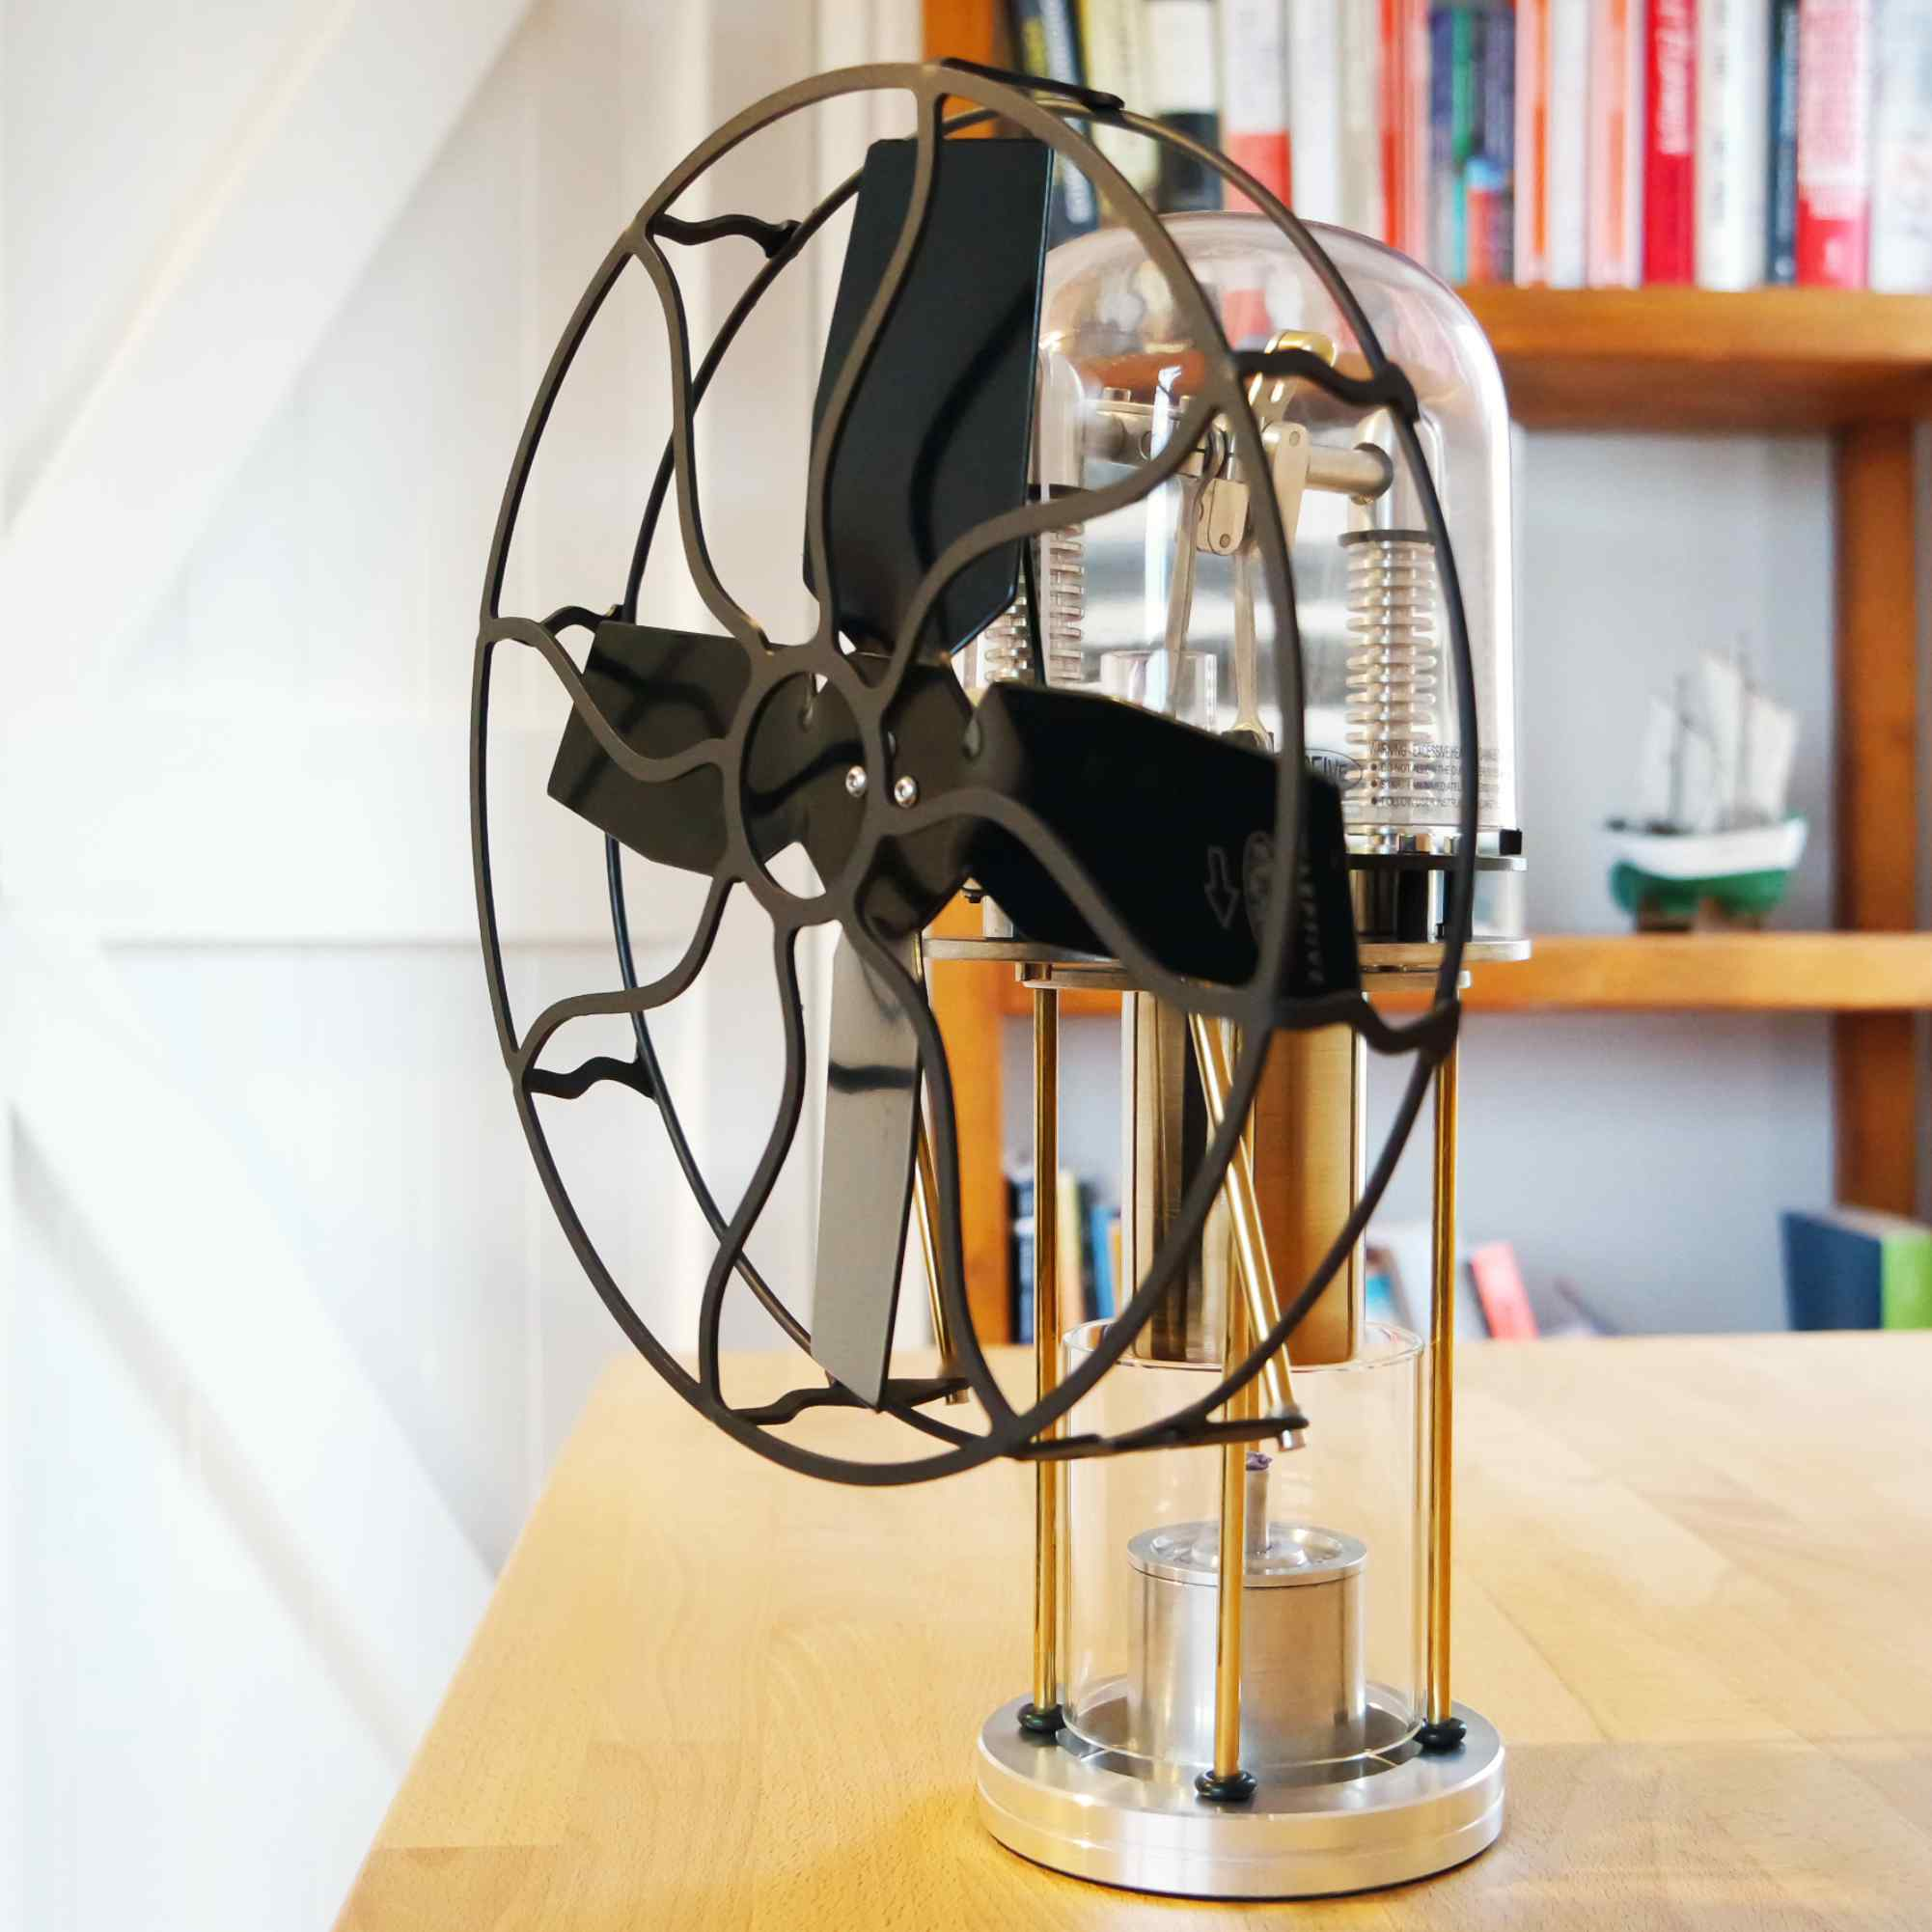 Compact Stirling engine fan